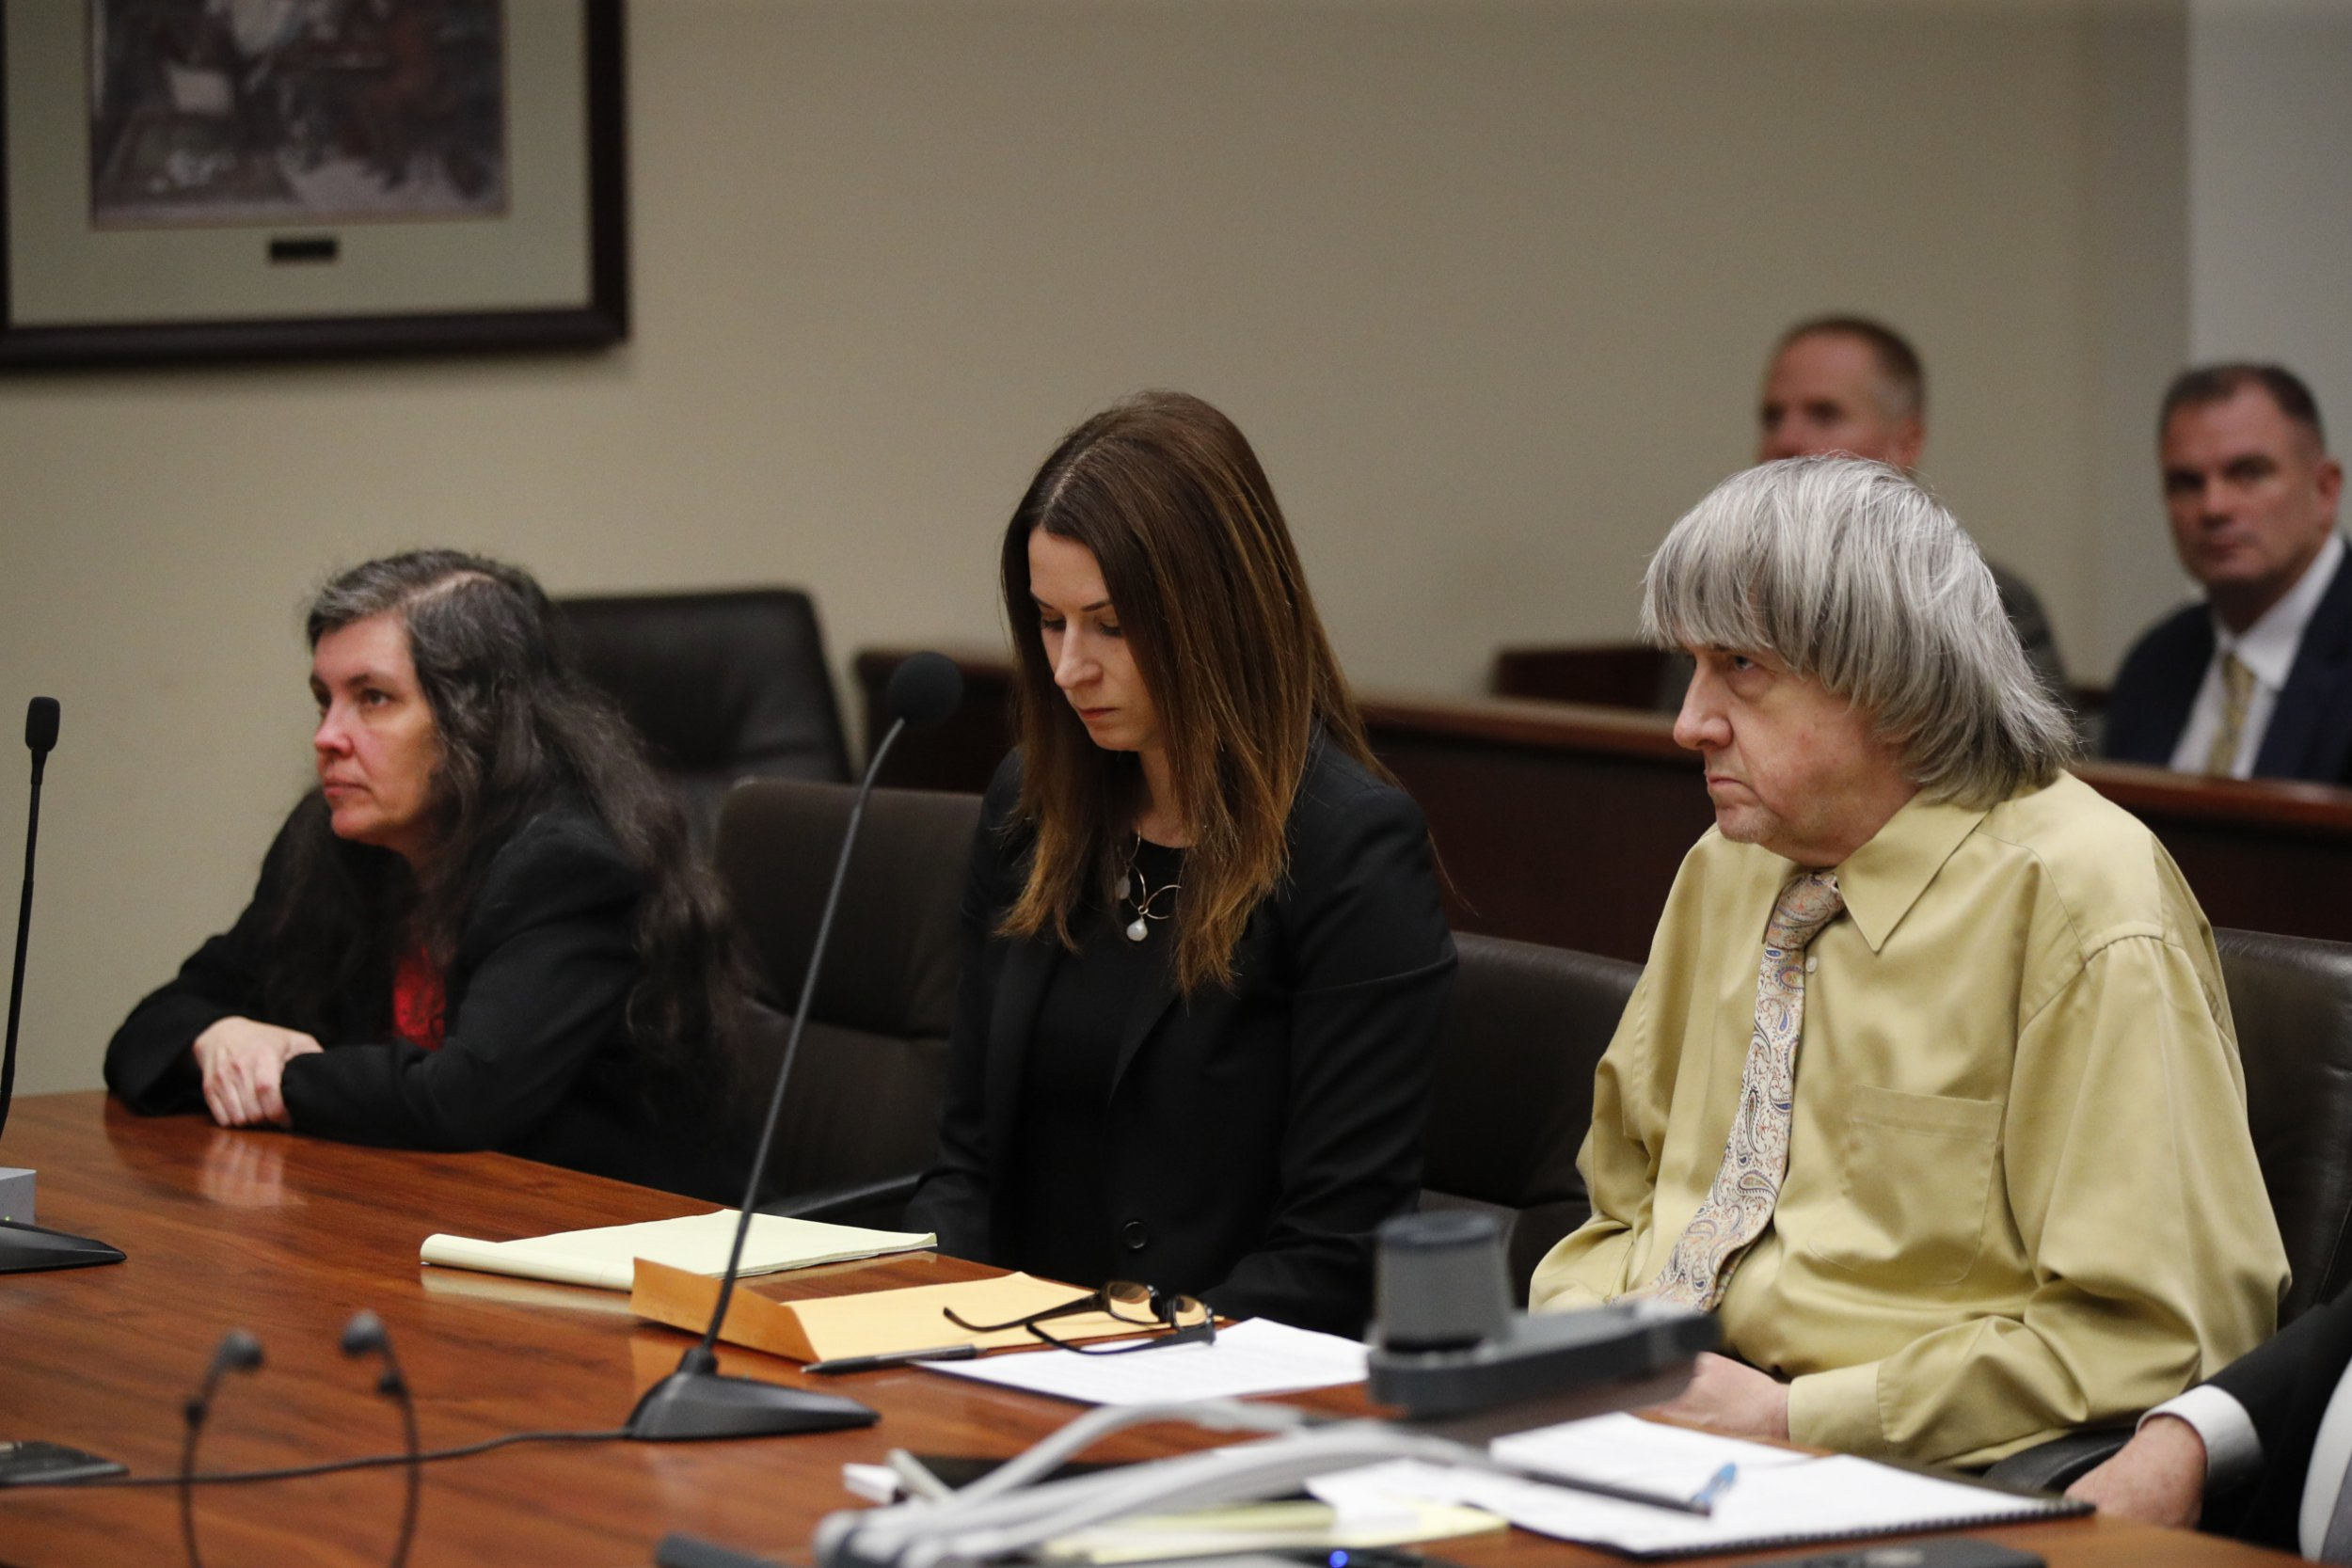 """David Turpin, right, and wife, Louise, left, listen to the judge, along with attorney Allison Lowe, during a courtroom hearing, Friday, Feb. 22, 2019, in Riverside, Calif. The California couple who shackled some of their 13 children to beds and starved them pleaded guilty Friday to torture and other abuse in a case dubbed a """"house of horrors."""" (AP Photo/Jae C. Hong, Pool)"""